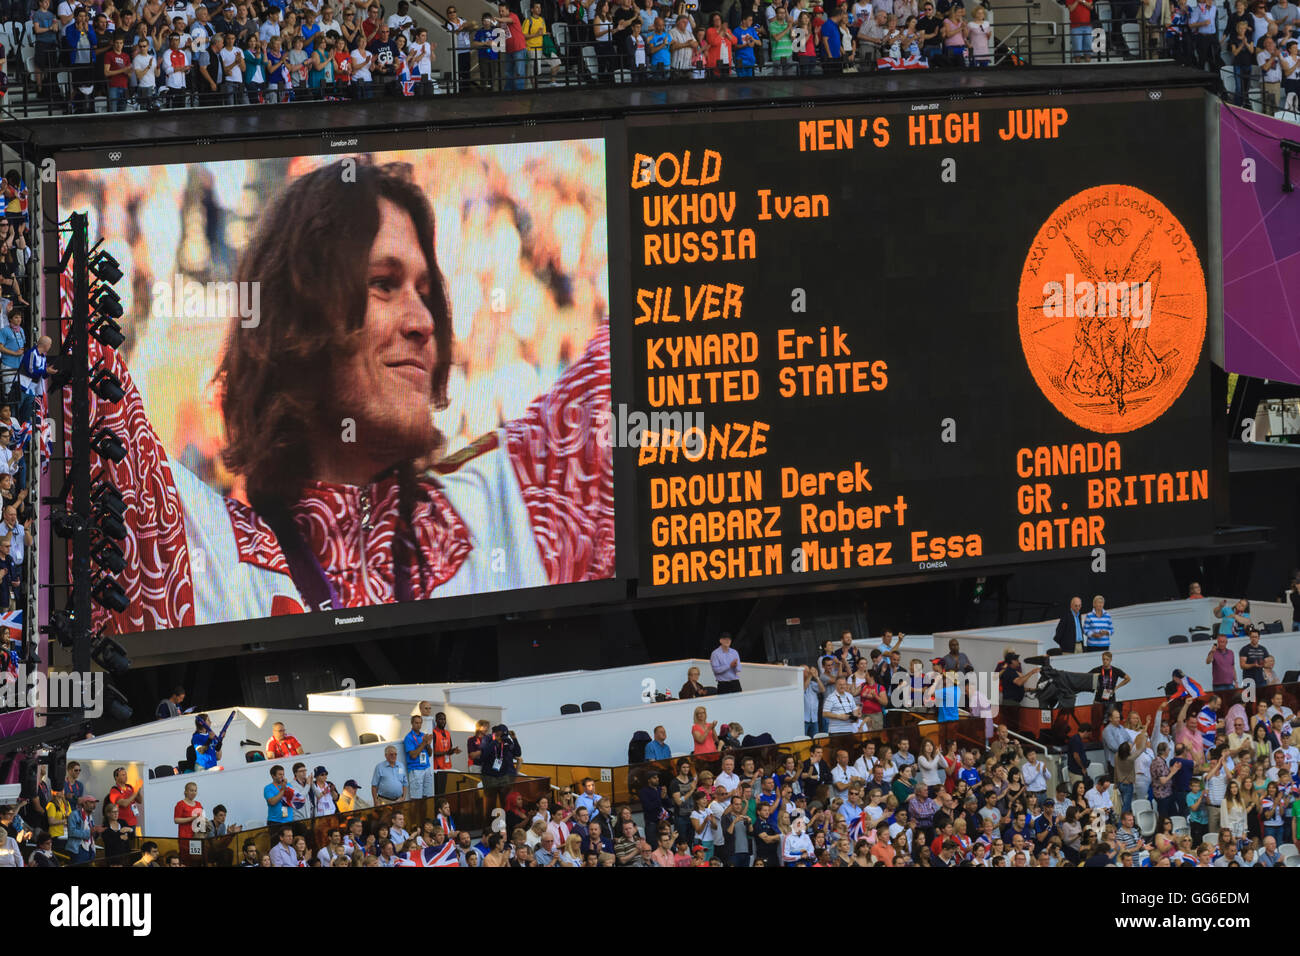 Stadium big screen shows winner of Men's high jump and medal positions, victory ceremony, London 2012, Olympic - Stock Image